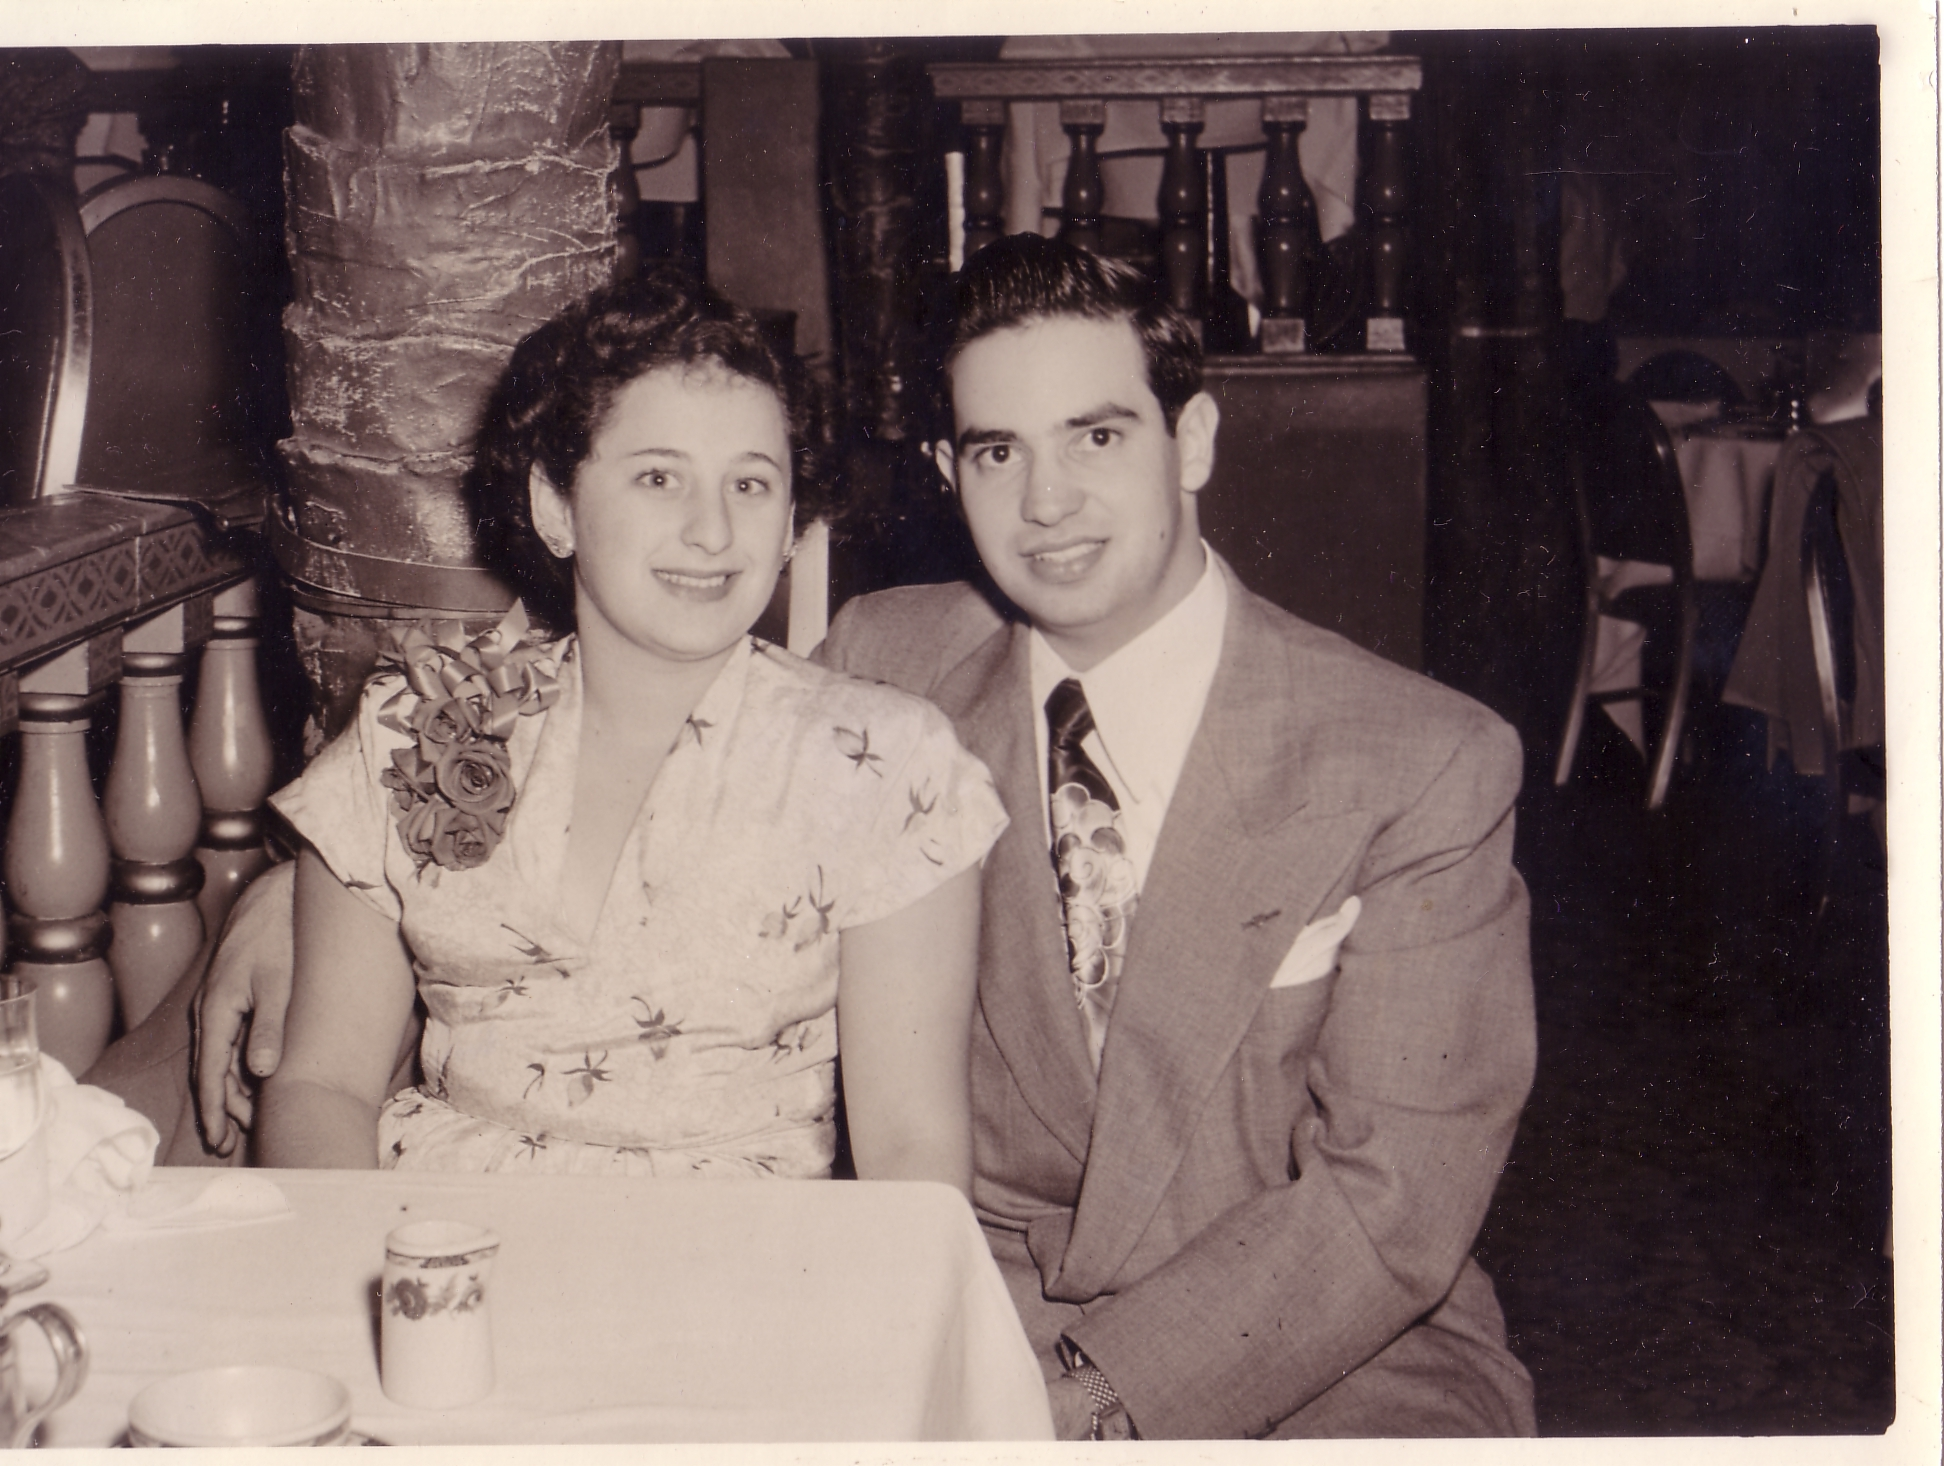 Mom and Dad  dating at Coconut Grove Sept 30, 1949